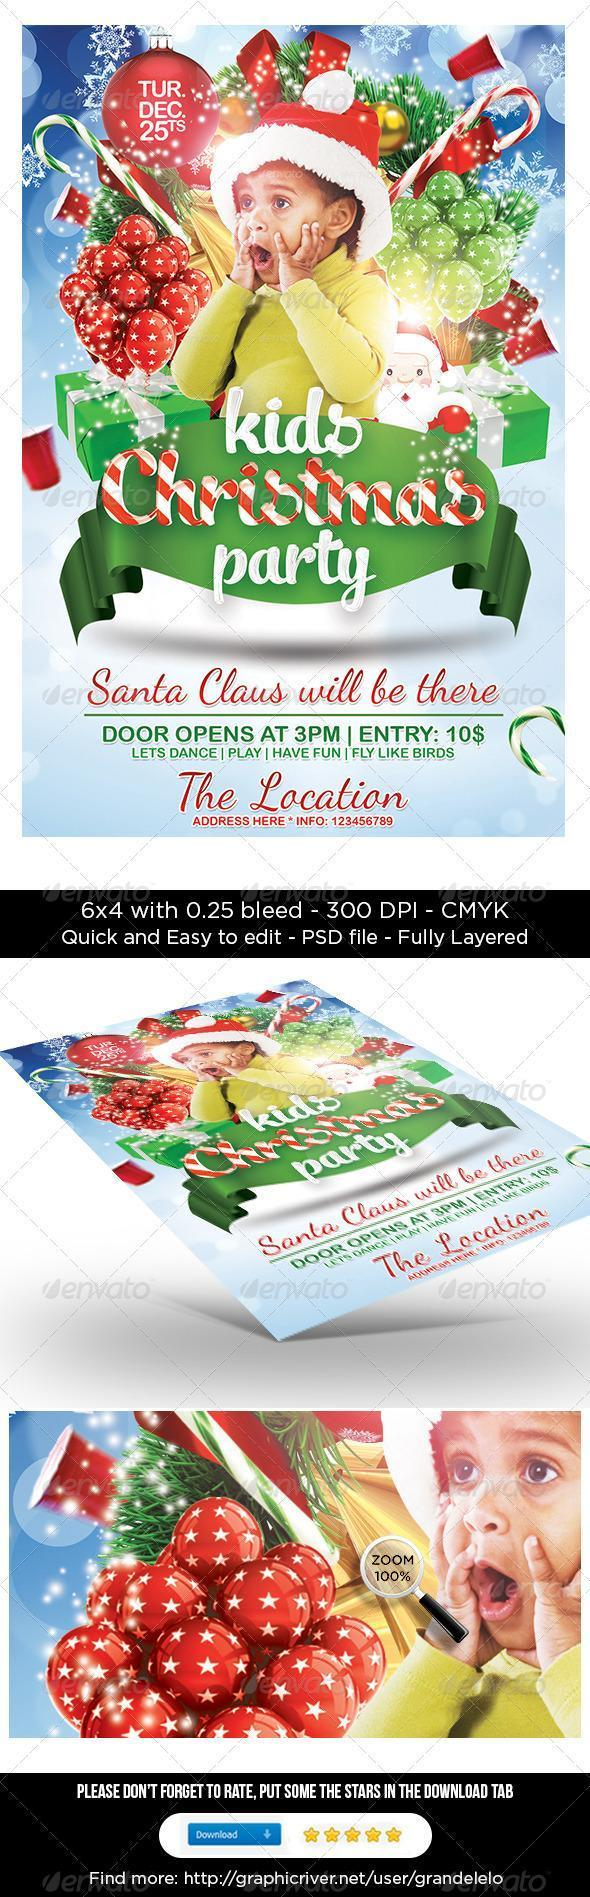 christmas party flyers premium files psddude kids party flyer christmas